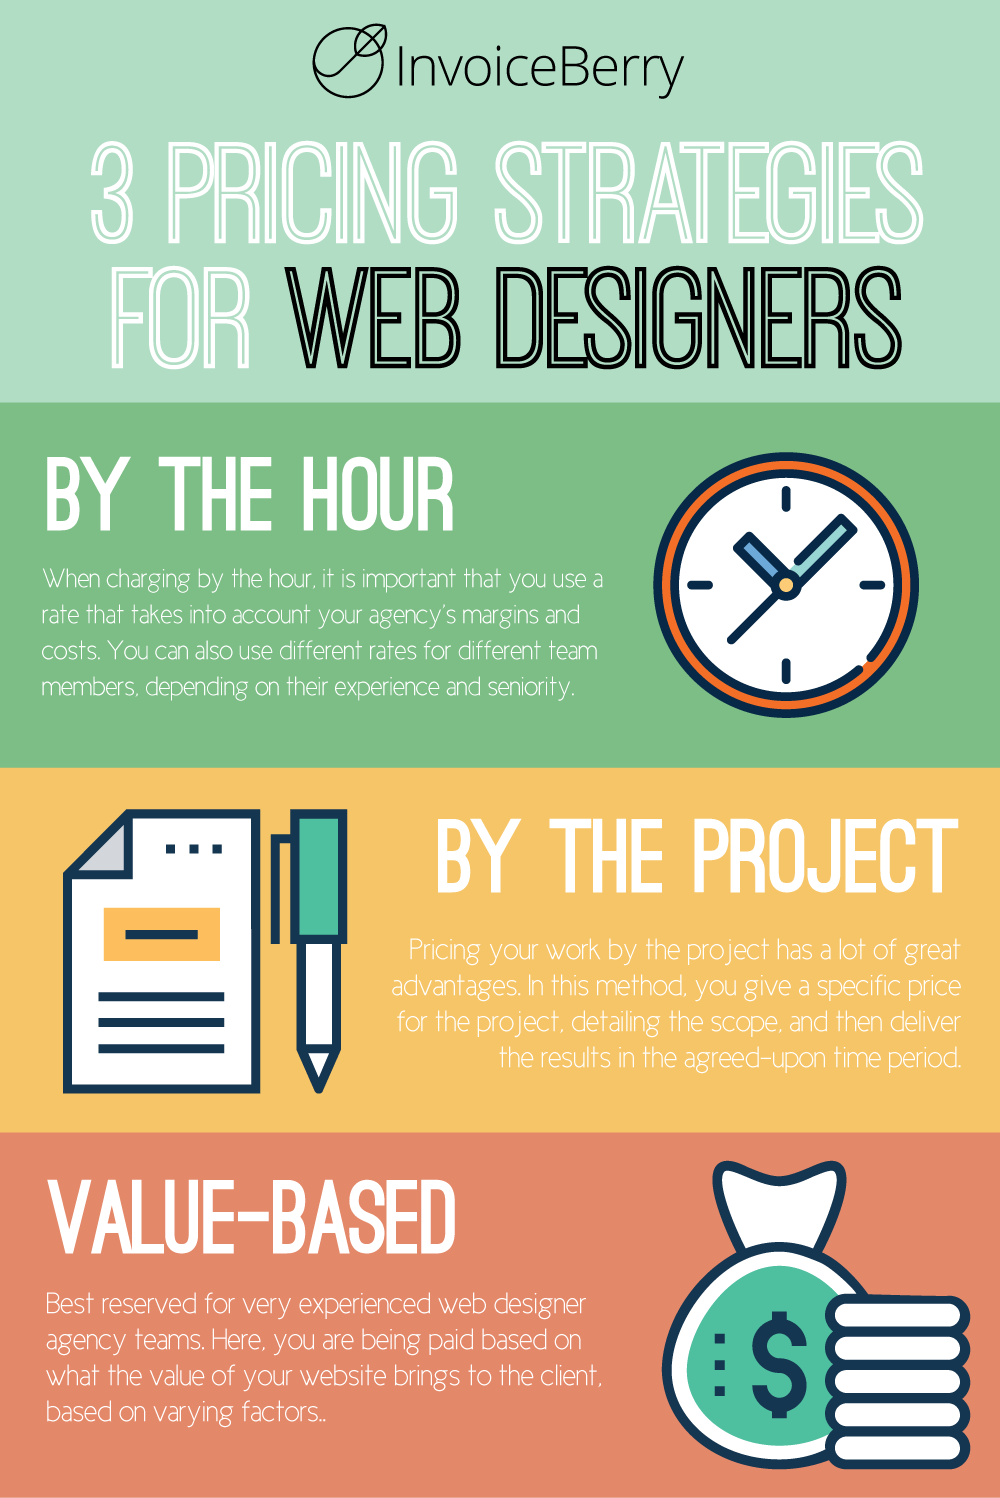 When determining prices for your web design agency, take these three strategies into account